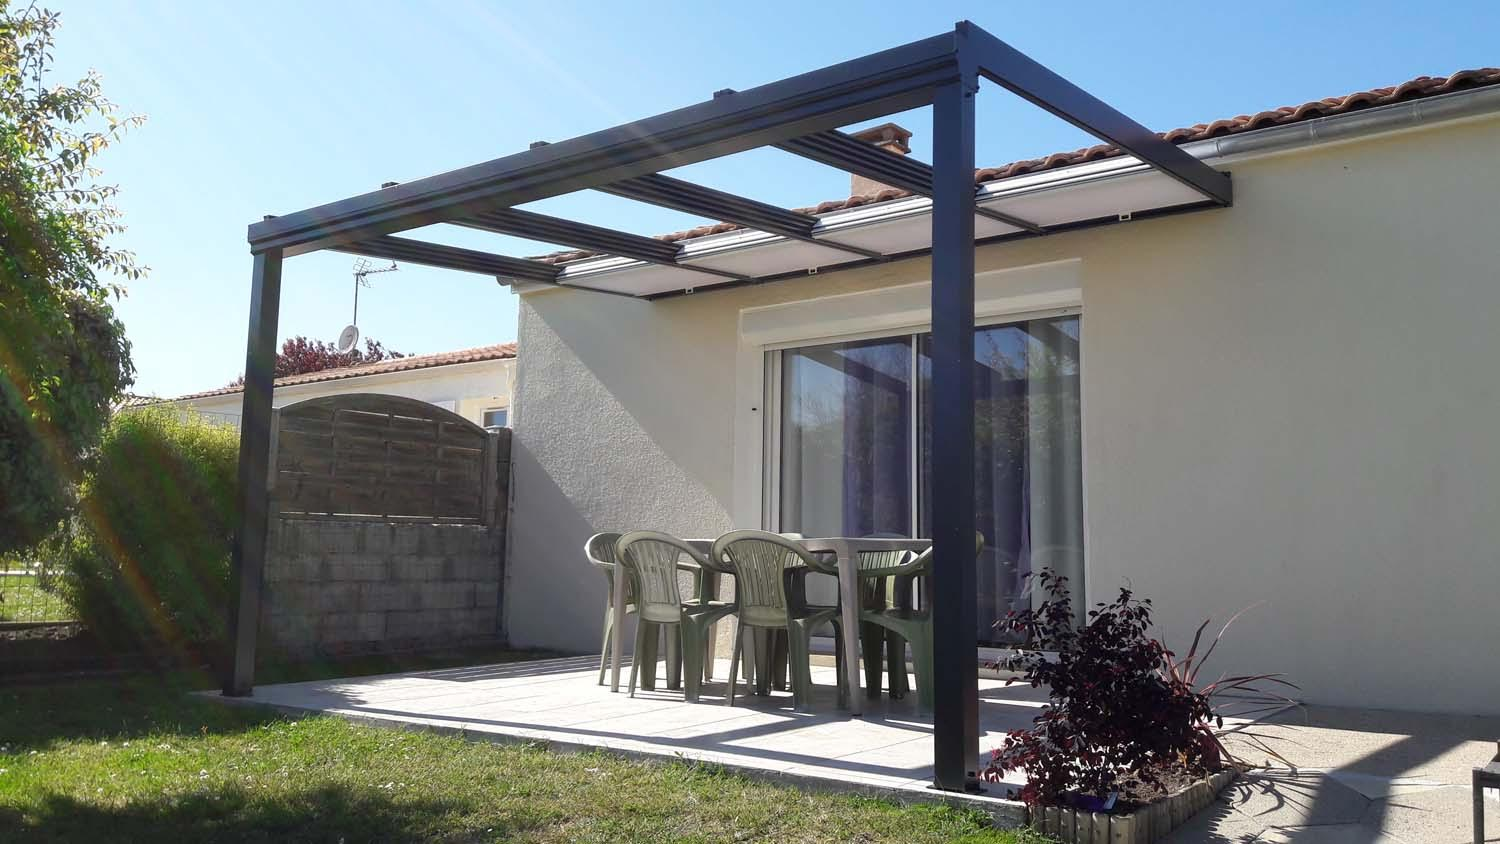 toit pergola cheap pergola aluminium sur mesure with toit pergola great pergola aluminium toit. Black Bedroom Furniture Sets. Home Design Ideas